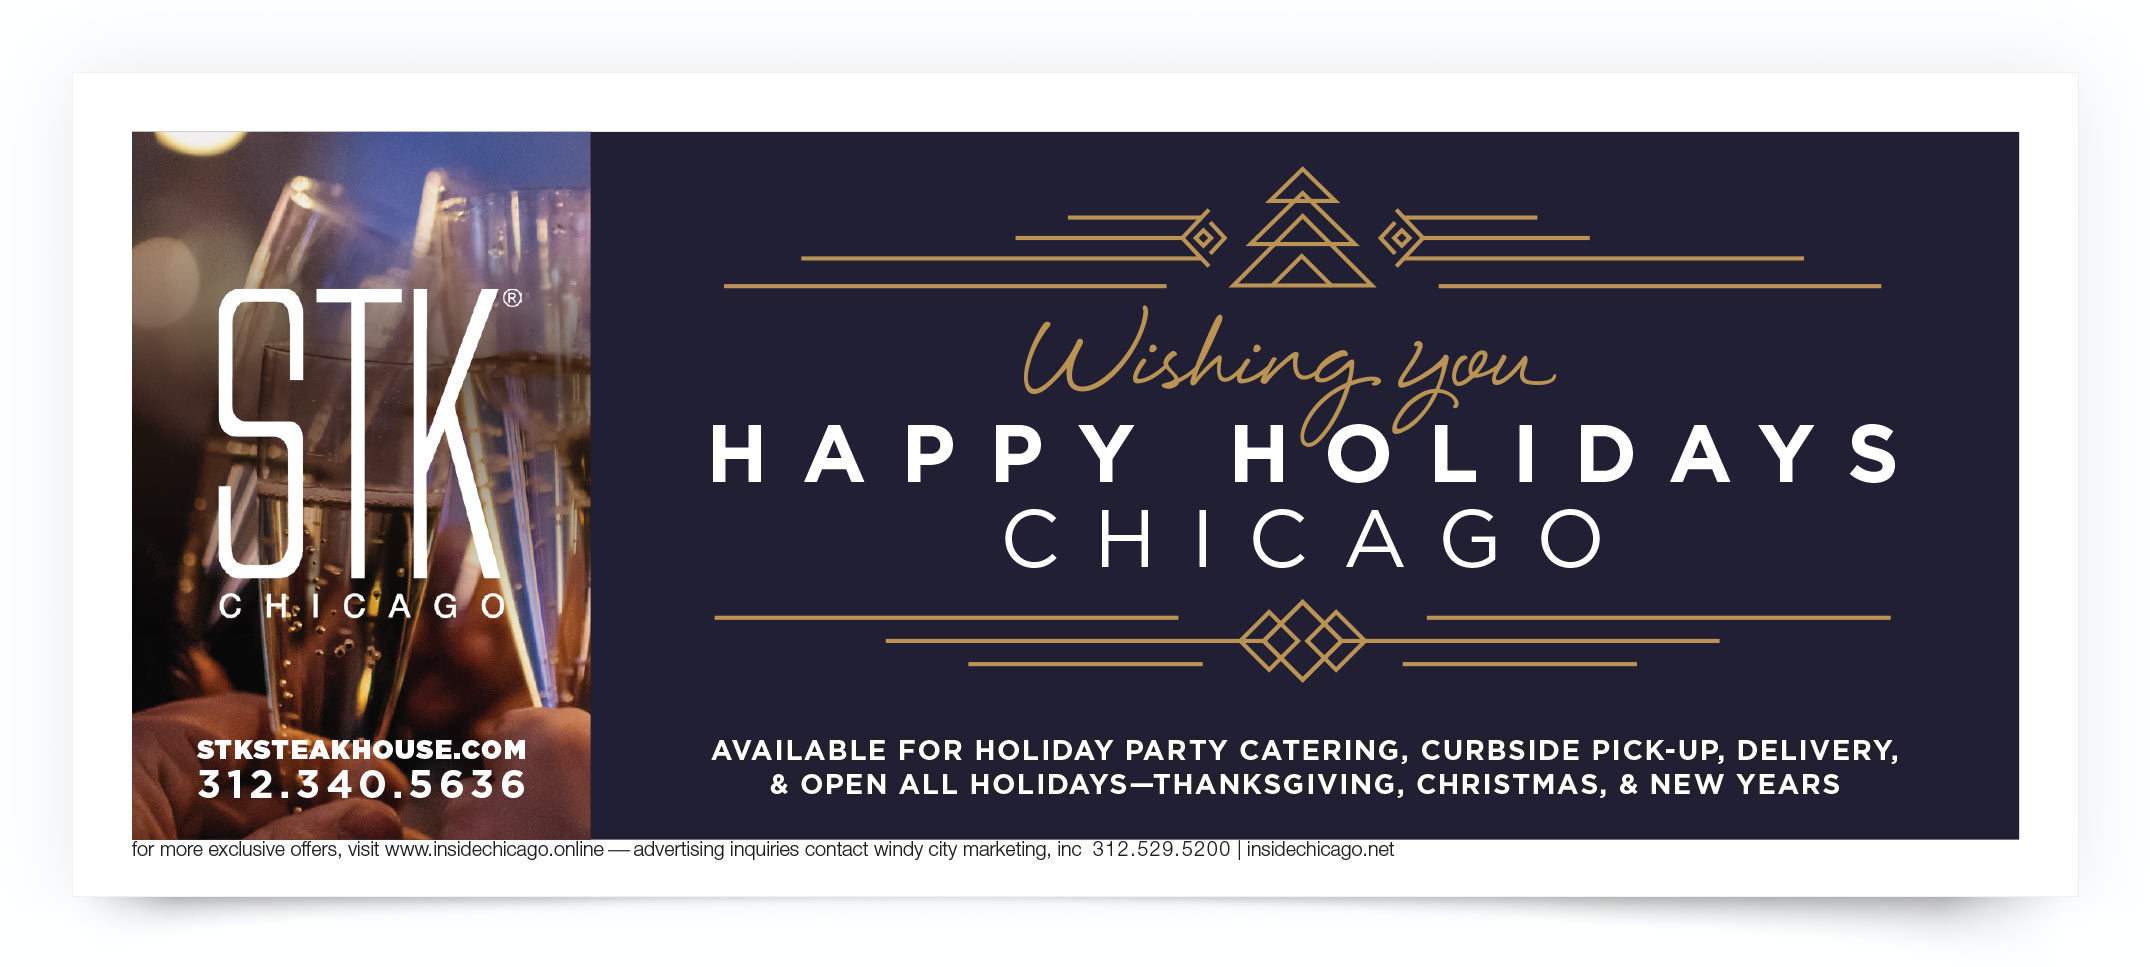 STK Steakhouse Chicago Coupon Intro